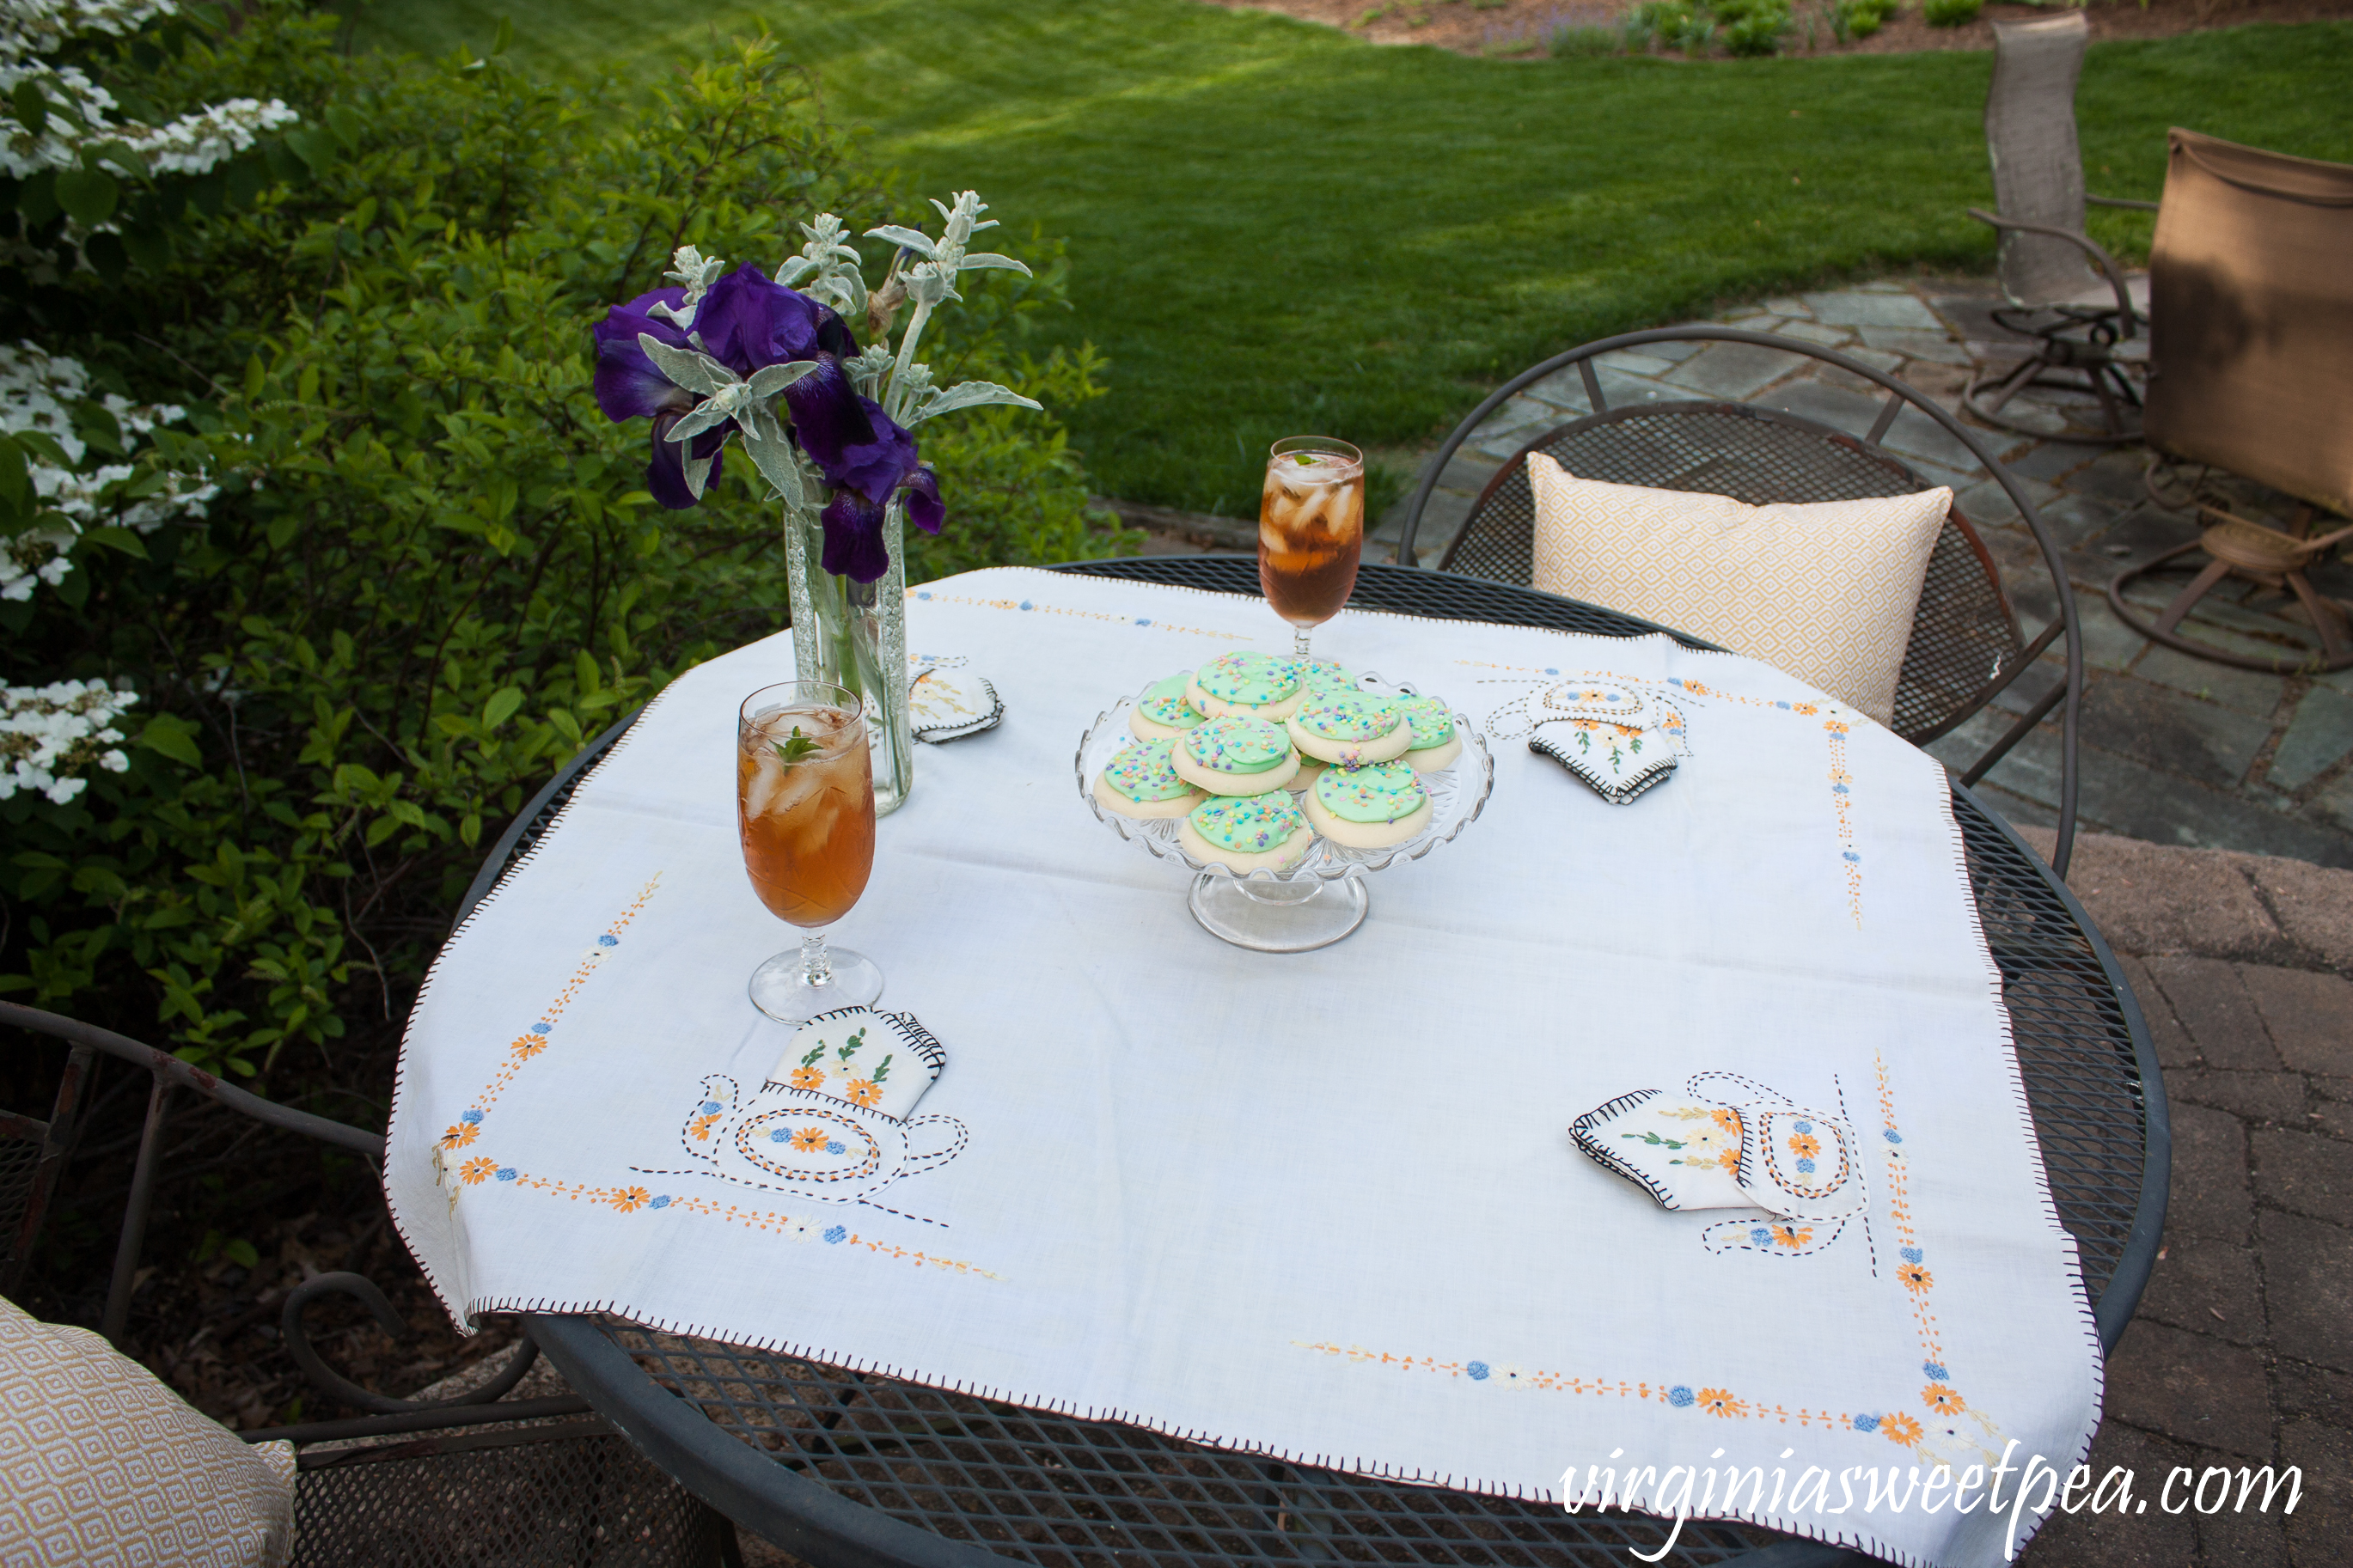 Spring Tea Party in the Garden with Vintage